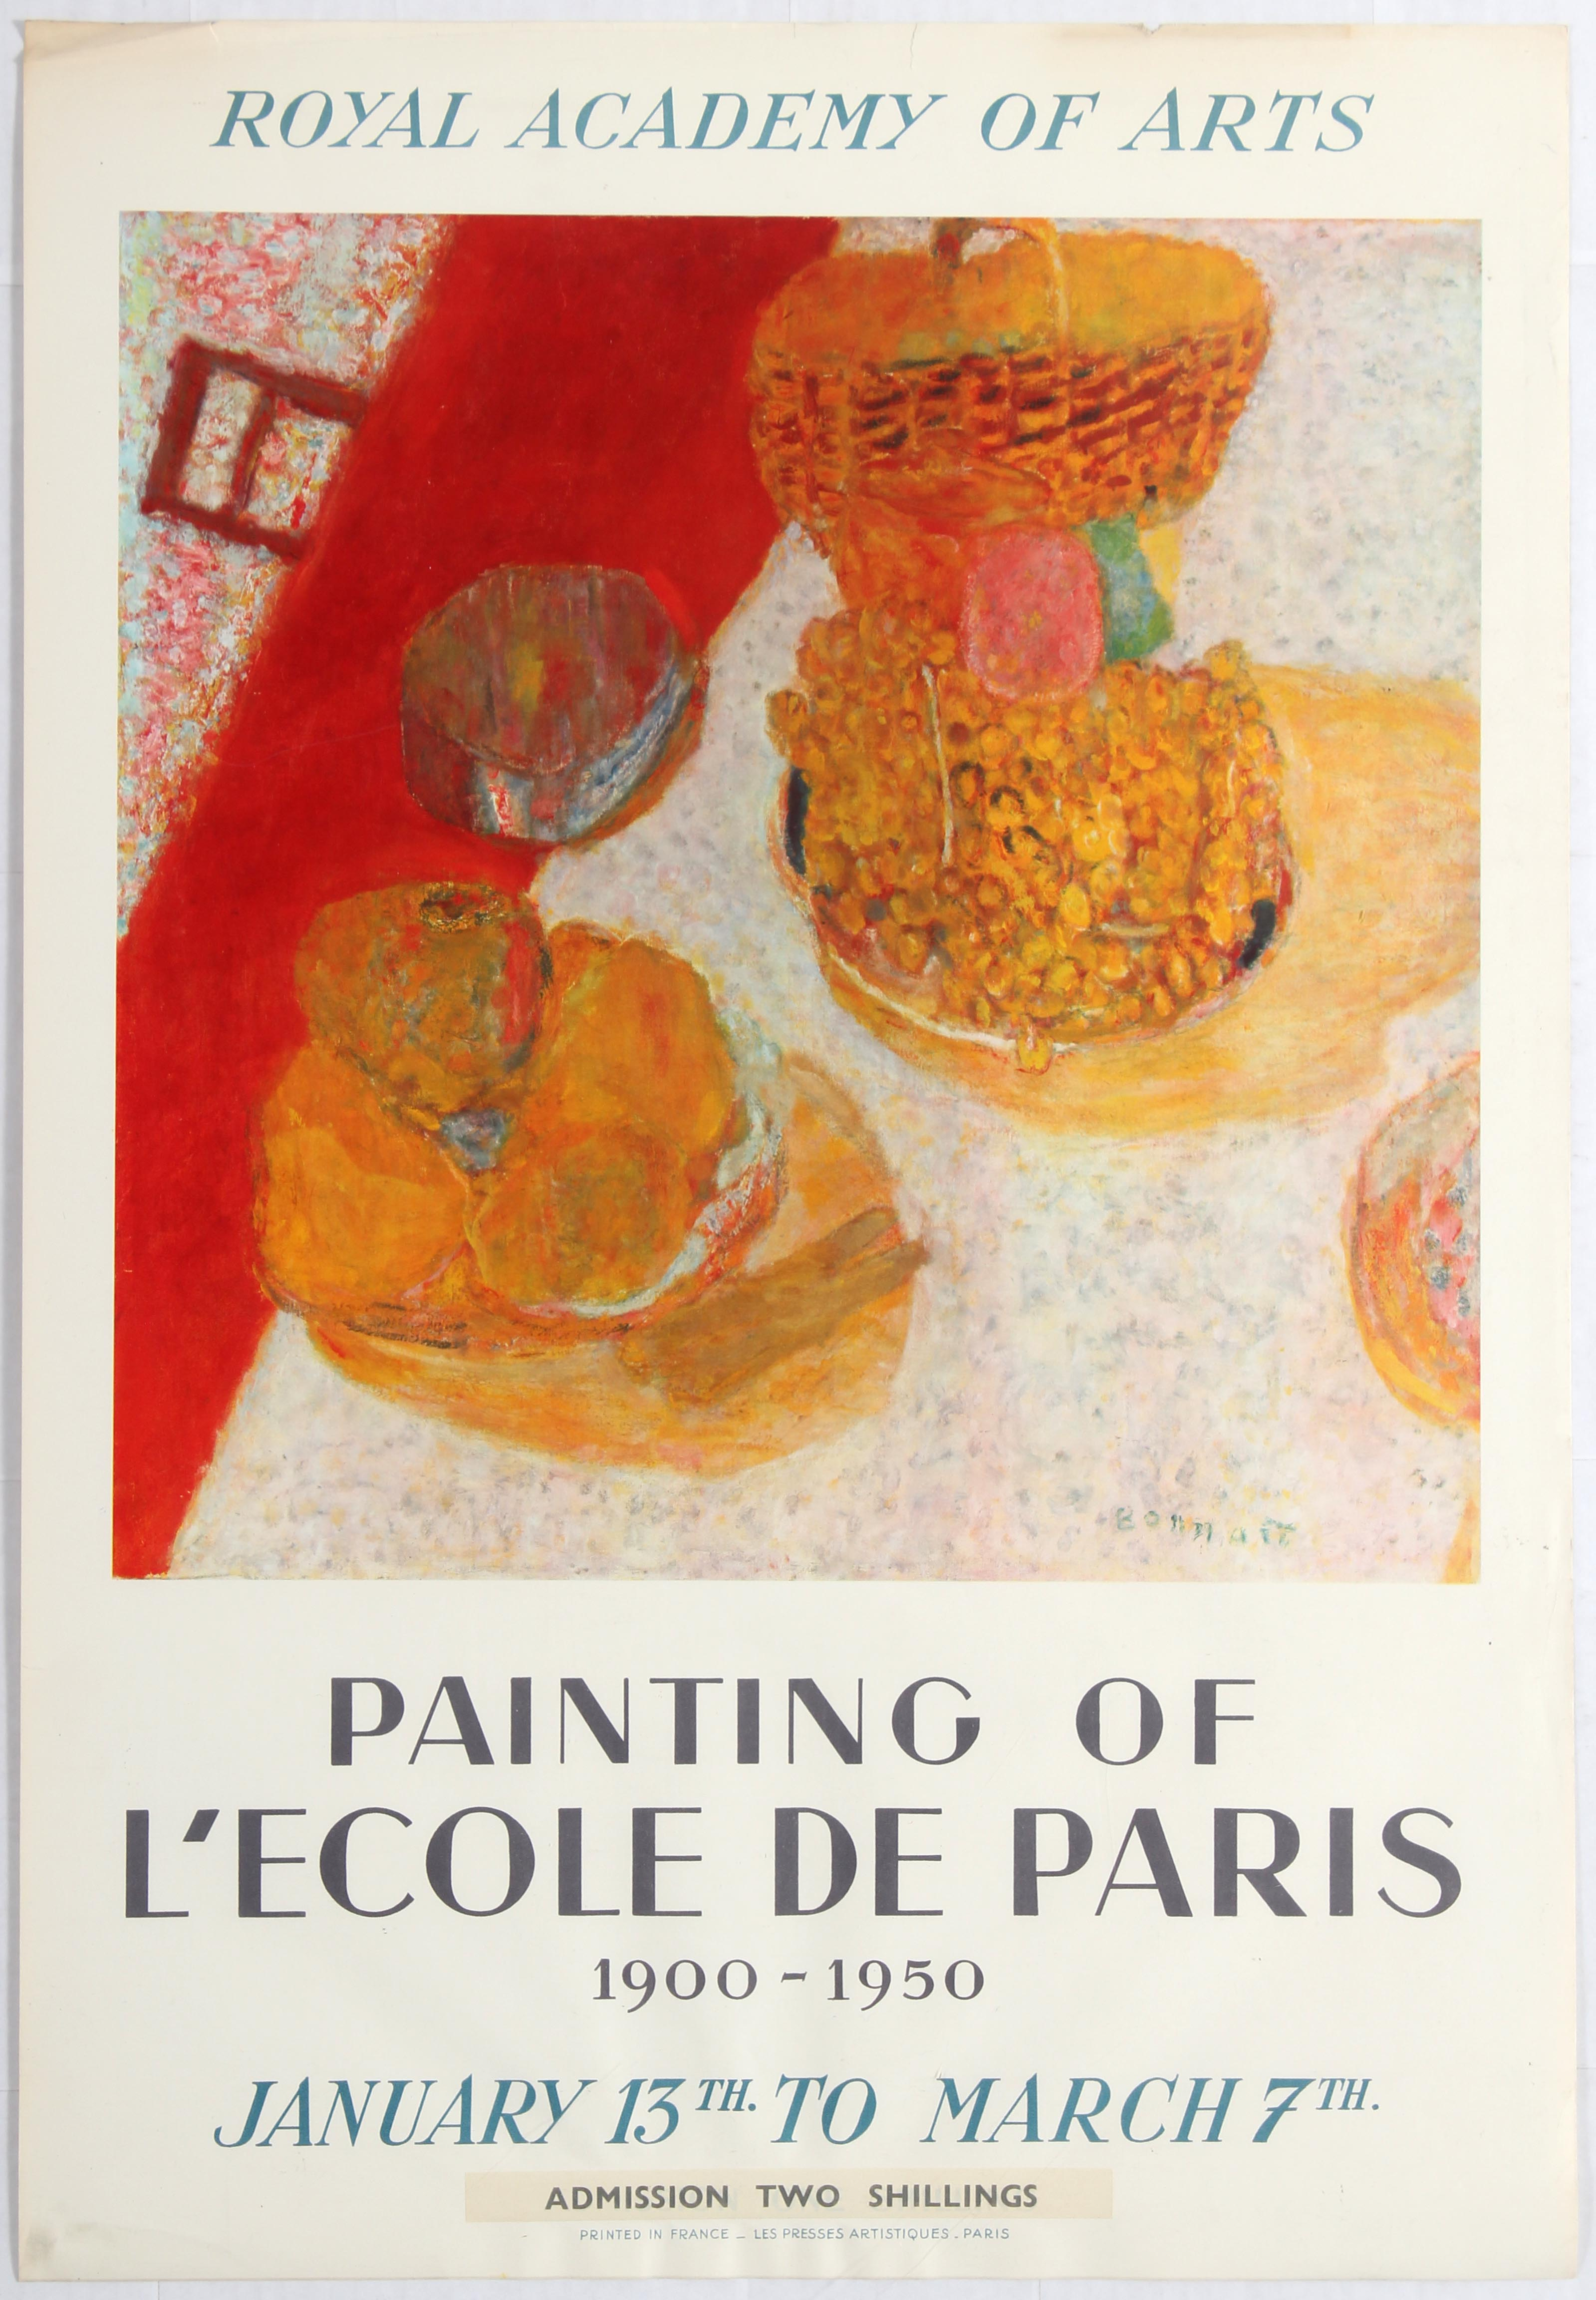 Lot 1505 - Advertising Poster Royal Academy of Arts Painting of L'Ecole de Paris 1900-1950